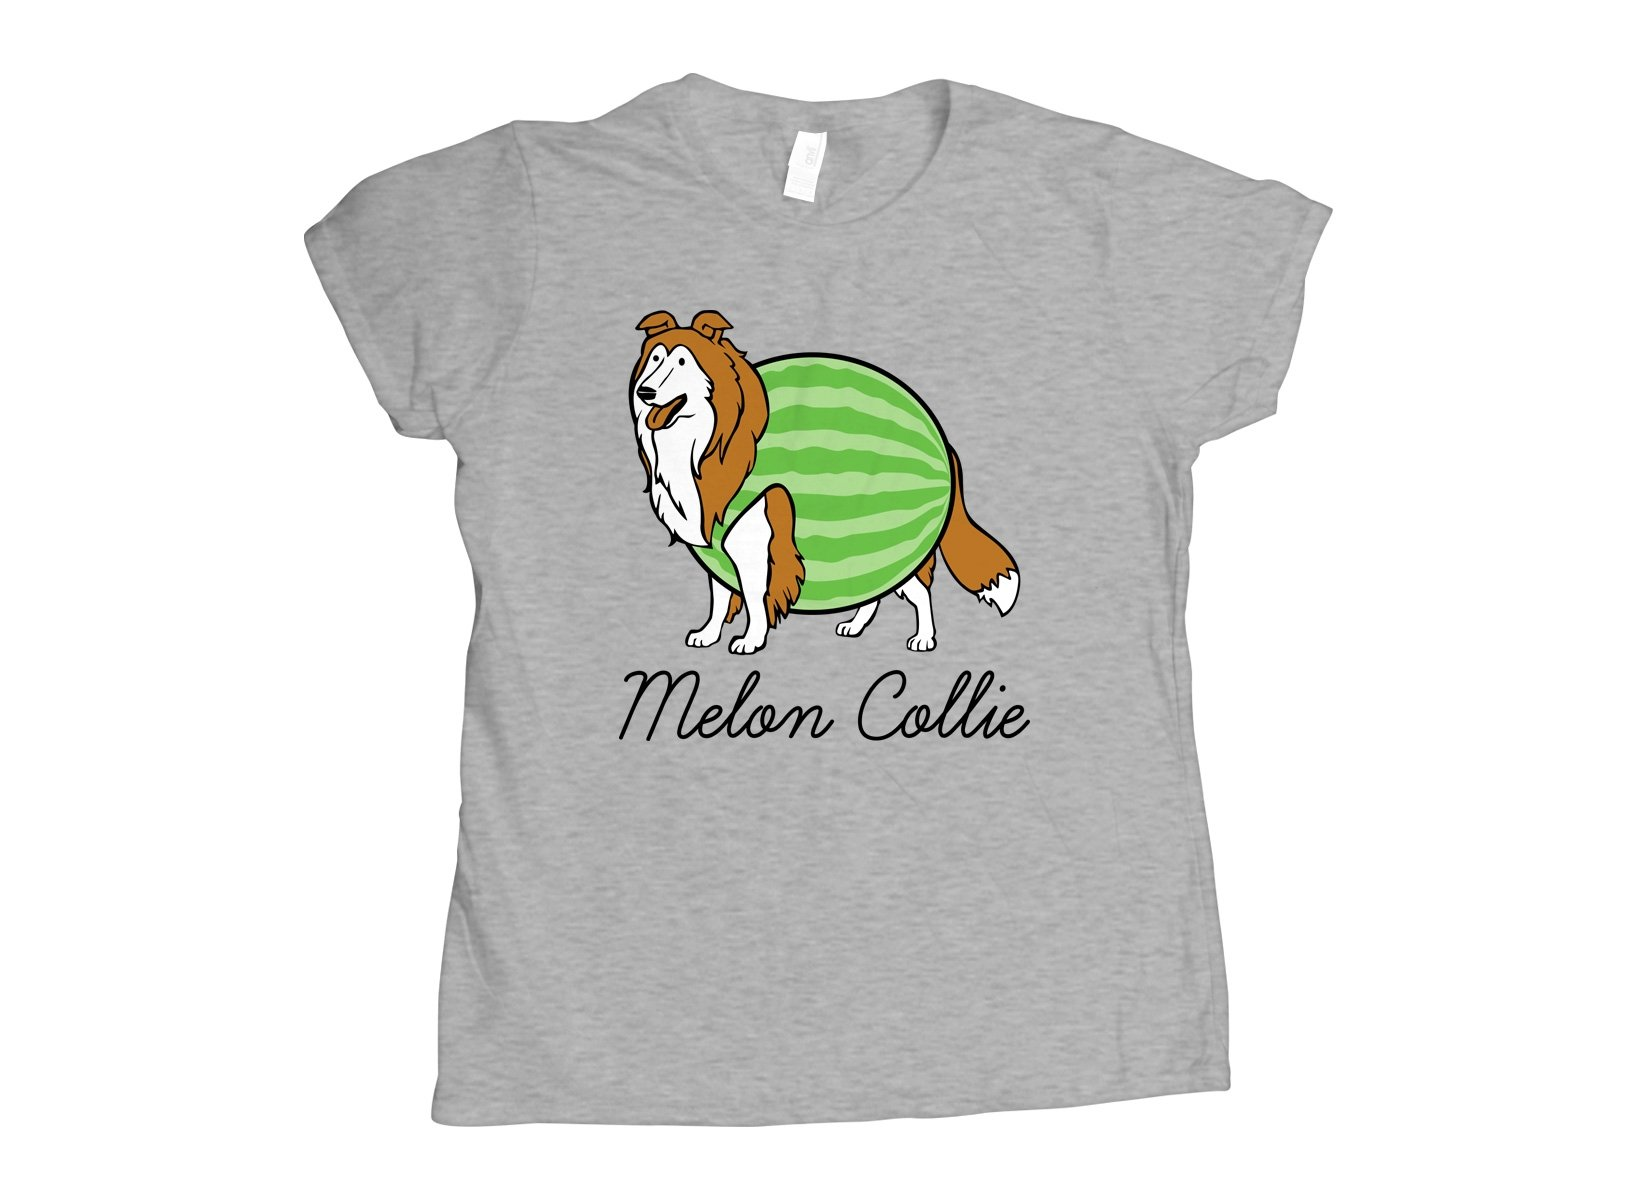 Melon Collie on Womens T-Shirt